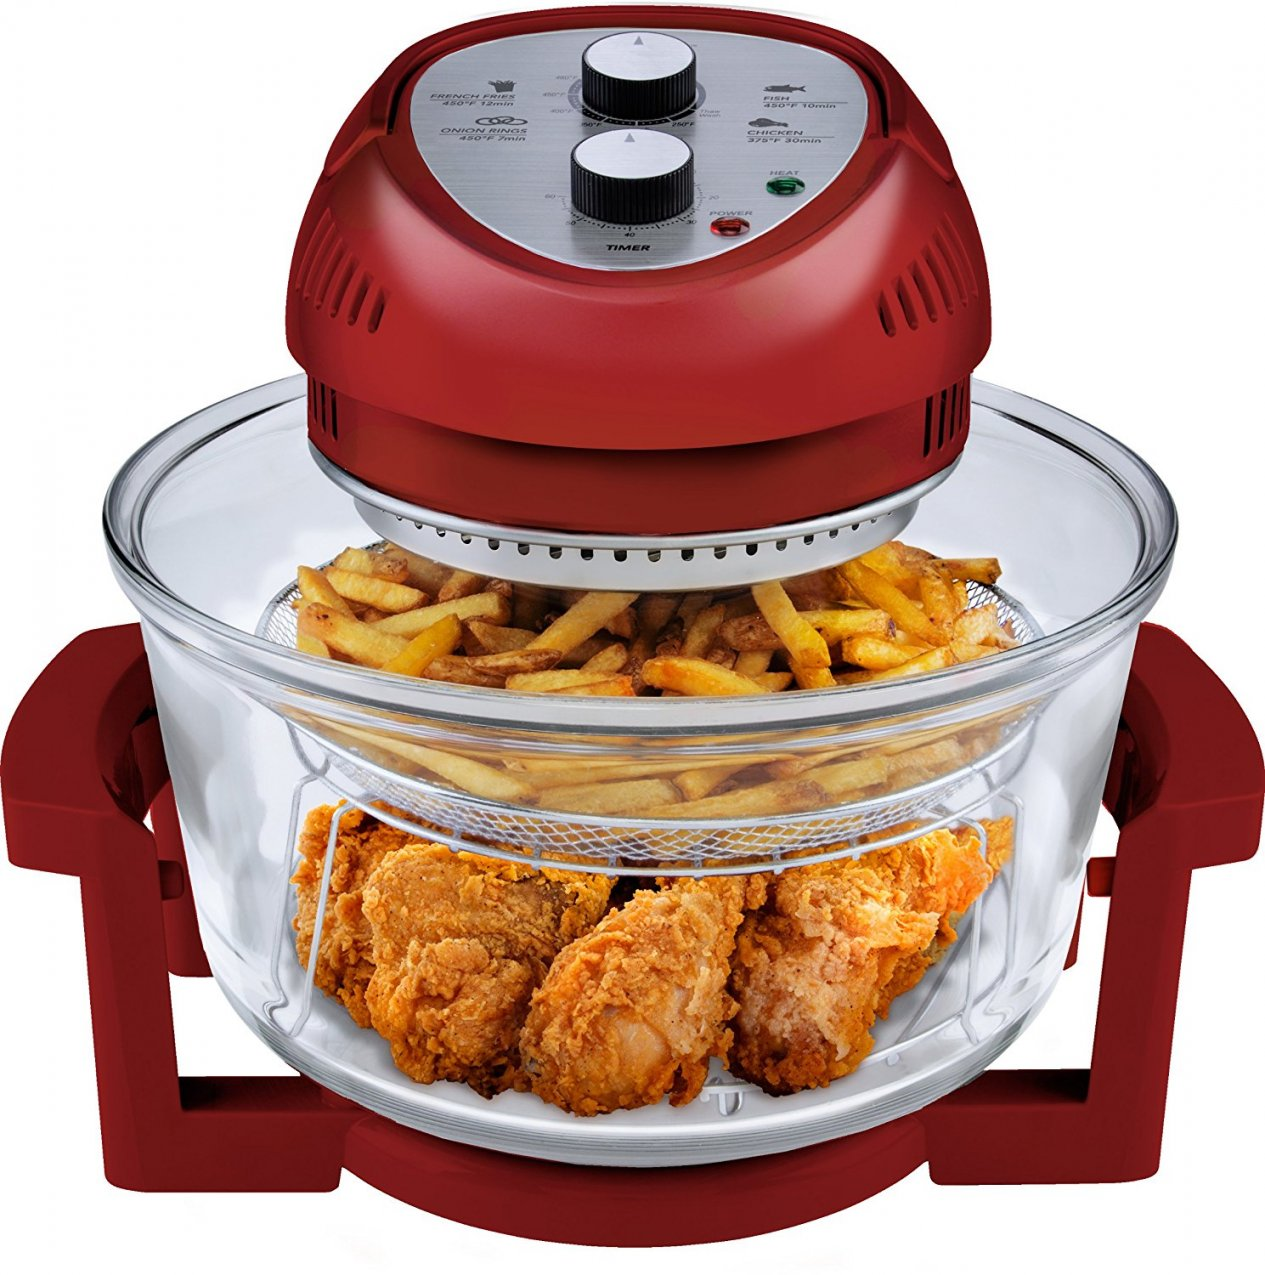 Big Boss 9063 Oil Less Air Fryer in Red